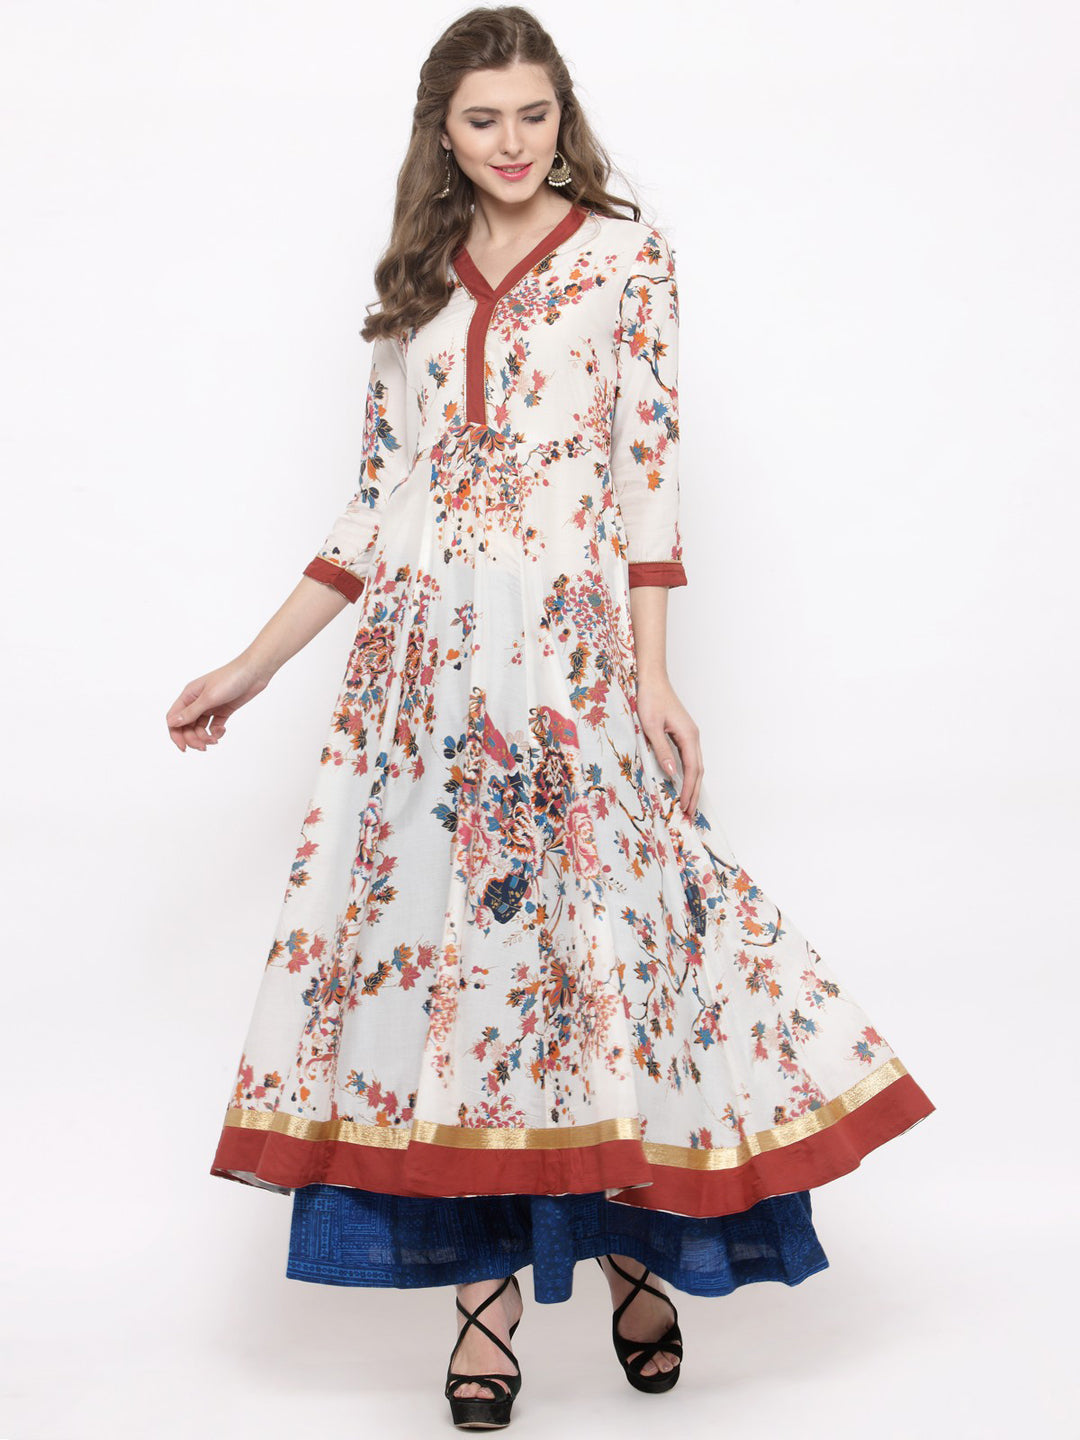 https://ladyindia.com/products/buy-now-floral-print-long-anarkalis-women-multicoloured-floral-printed-anarkali-cotton-kurta